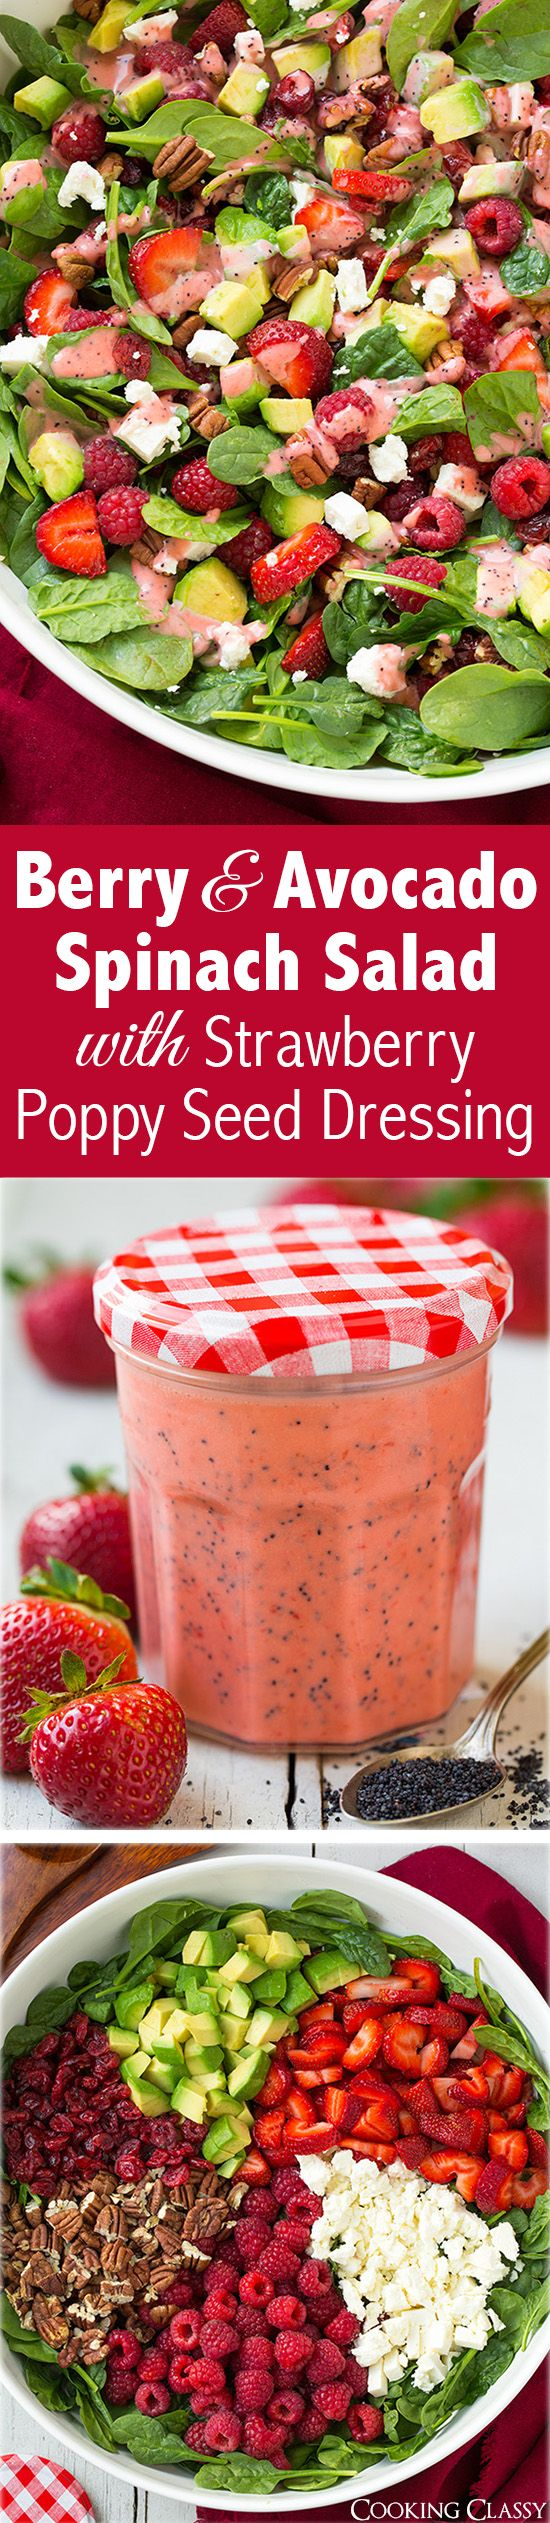 Red Berry & Avocado Spinach Salad with Strawberry Poppy Seed Dressing - this salad is AMAZING!!!